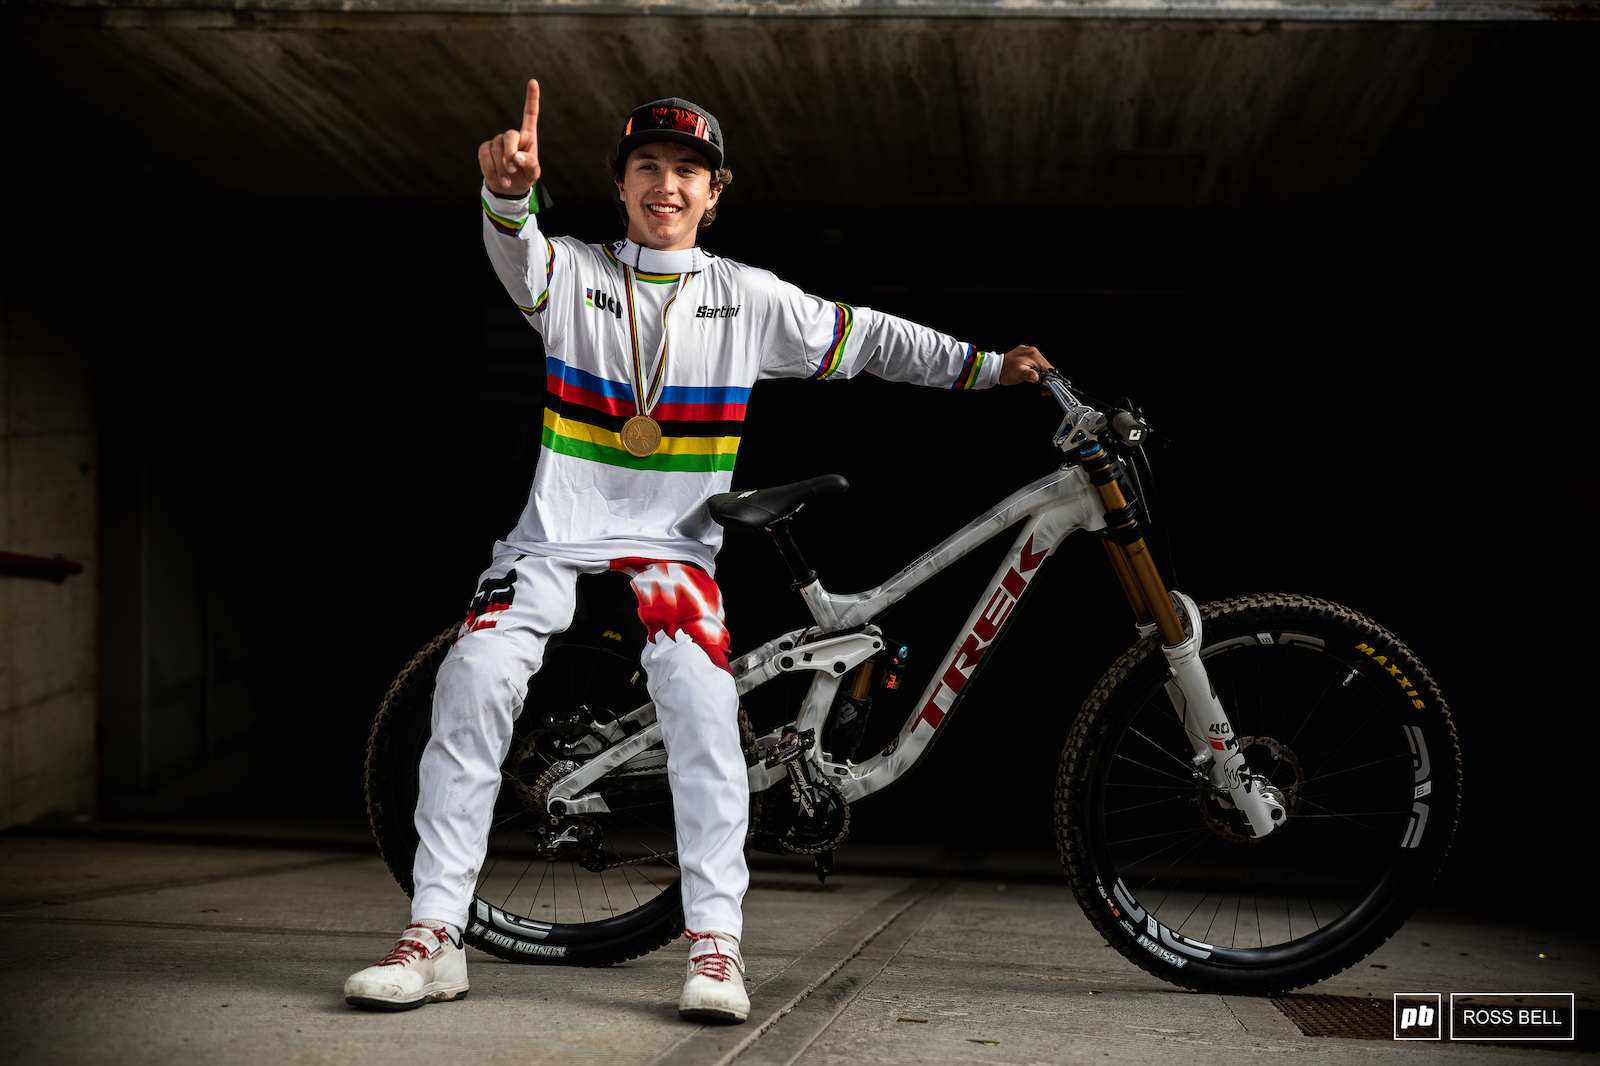 Jackson Goldstone takes his first World Championship title at the first time of asking.